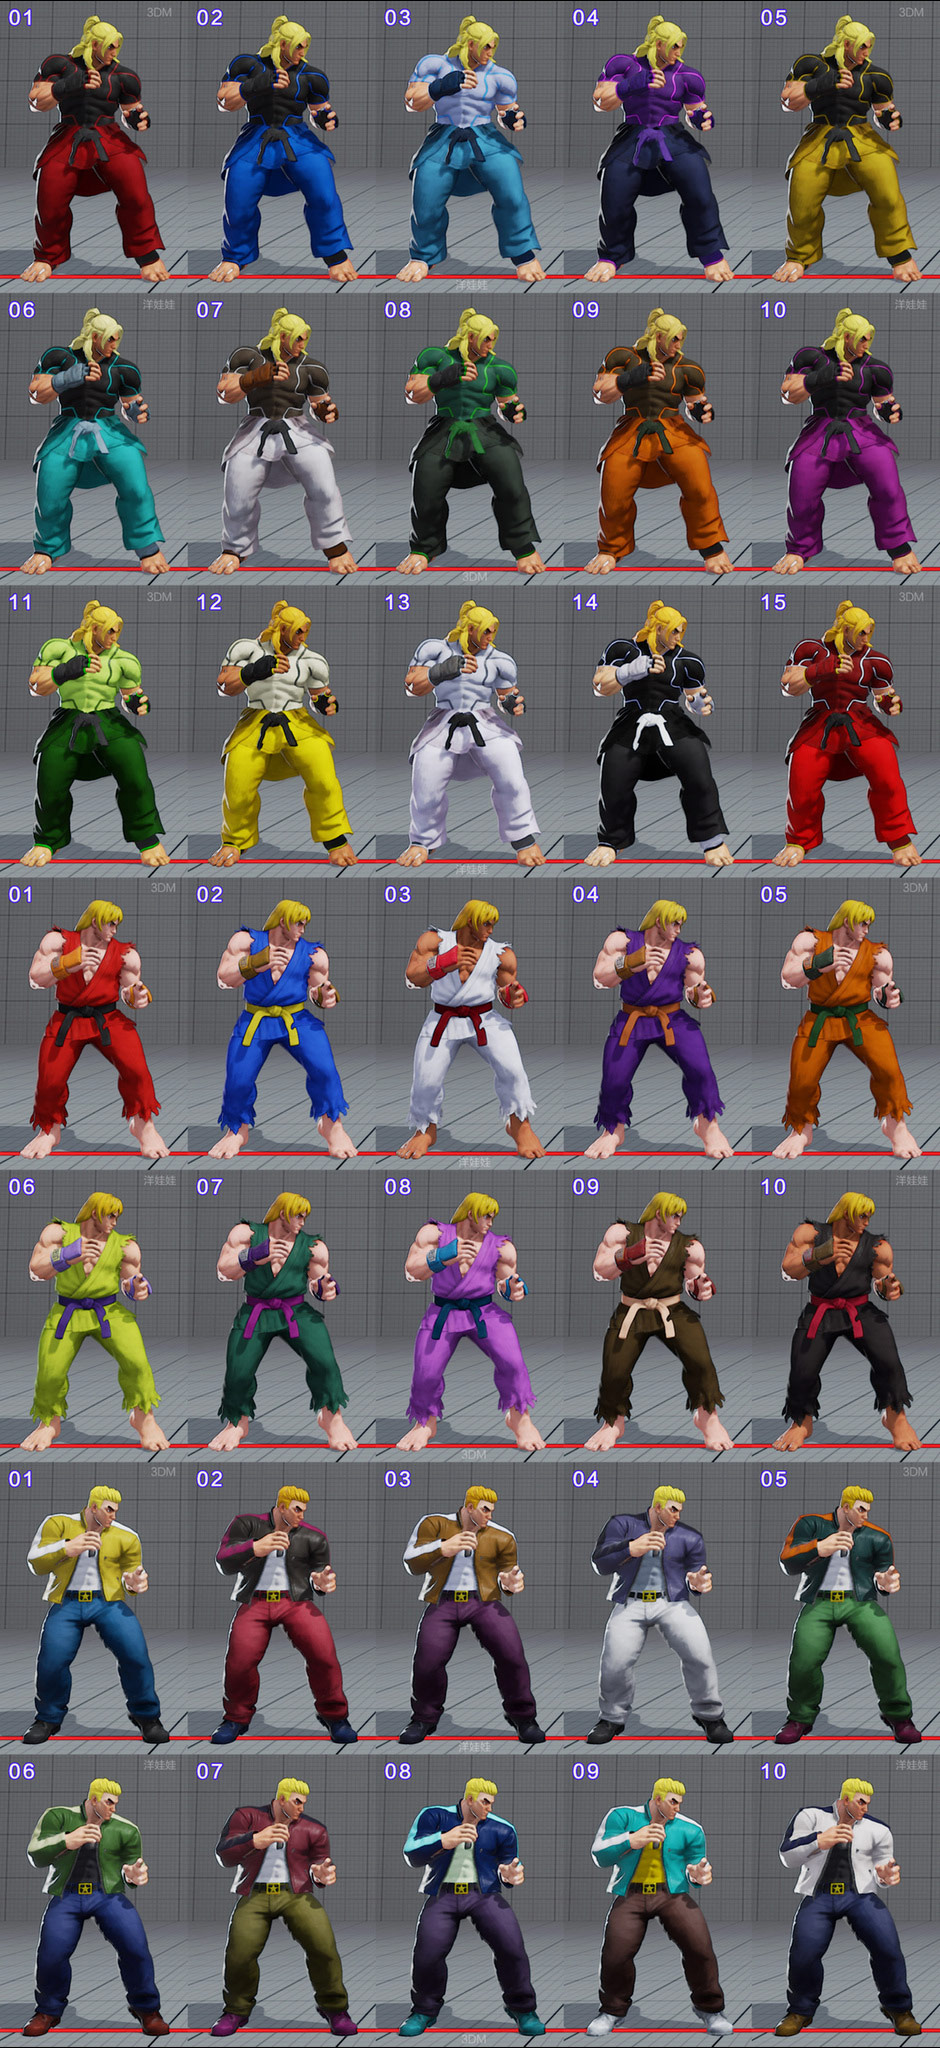 All colors for all current costumes in Street Fighter 5 6 out of 18 image gallery